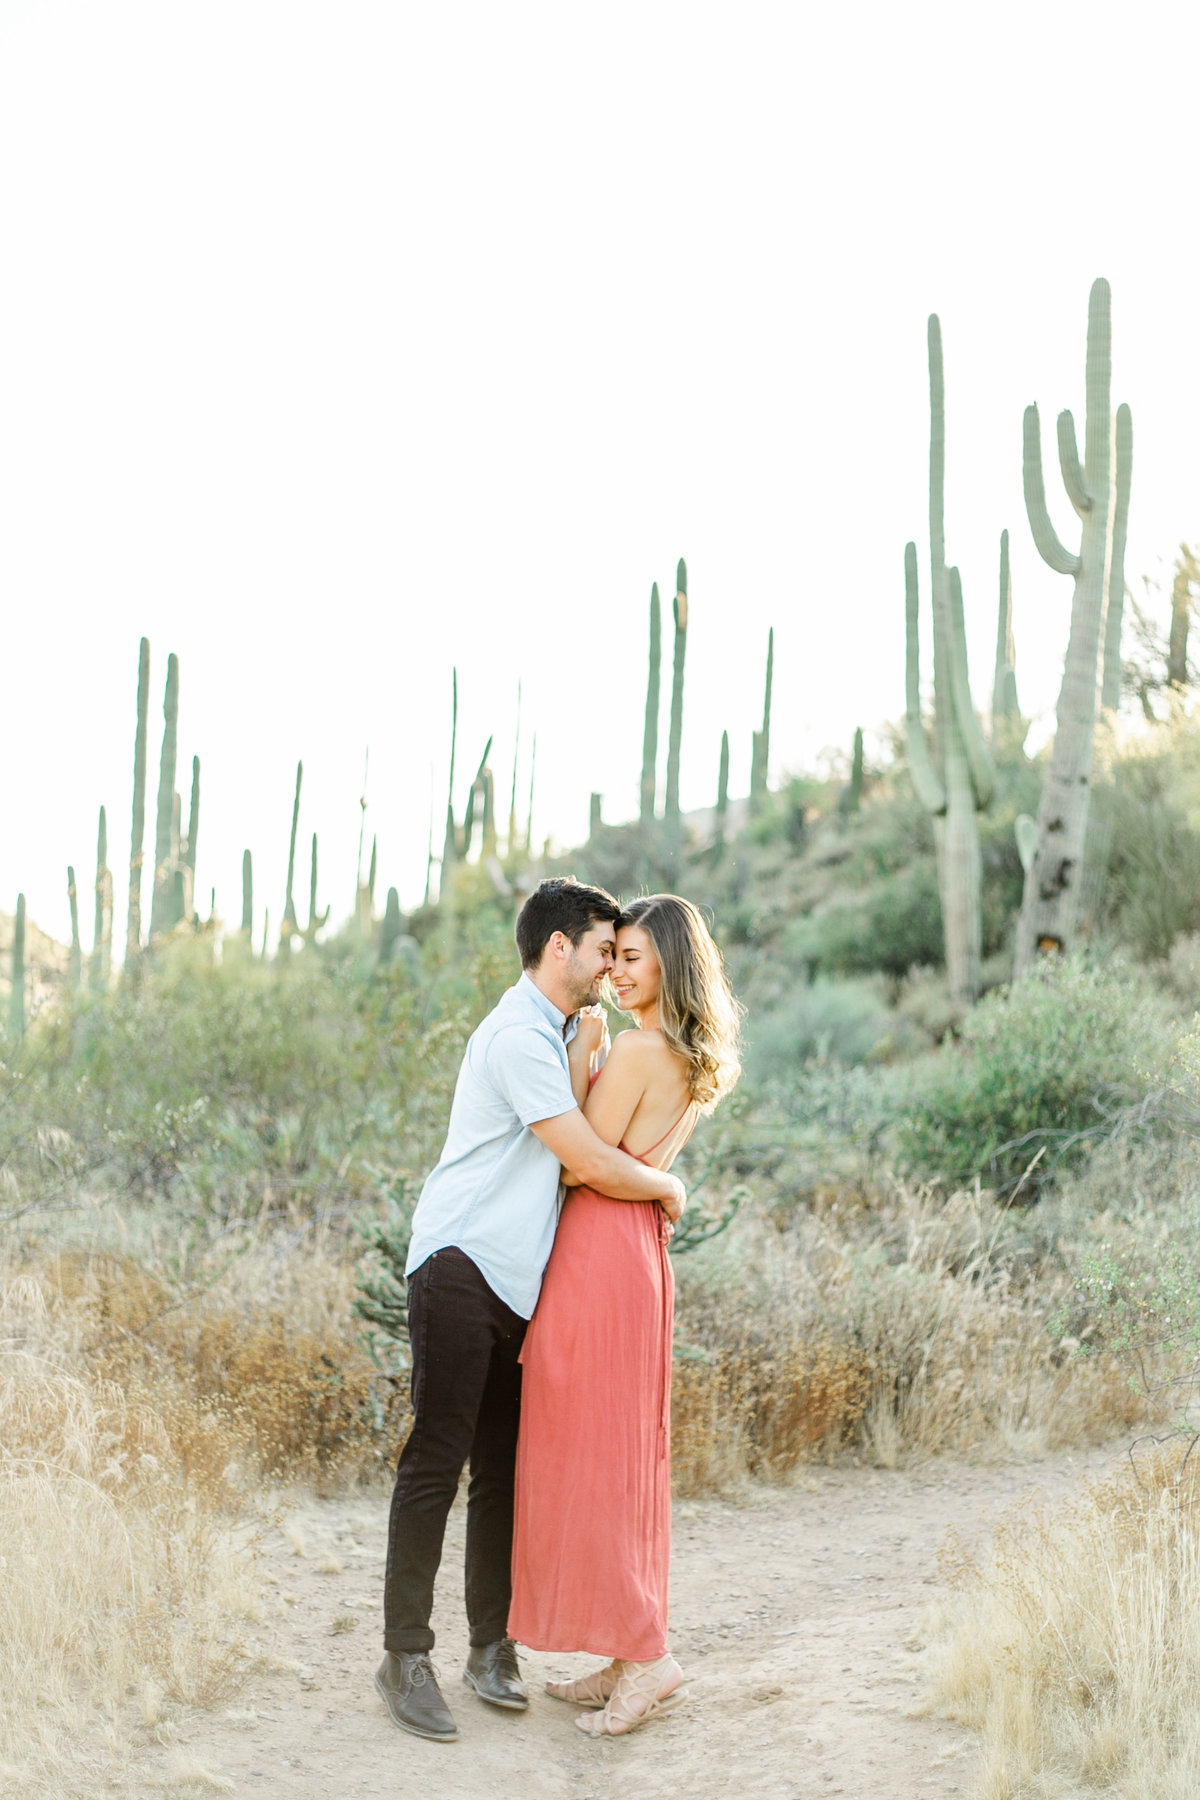 Karlie Colleen Photography - Arizona Desert Engagement - Brynne & Josh -95